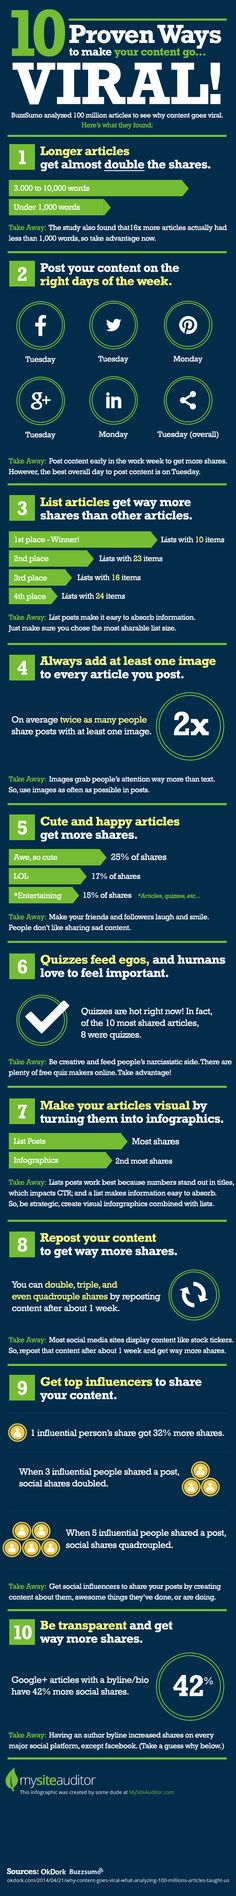 10 proven ways to make content go viral | Articles | Home